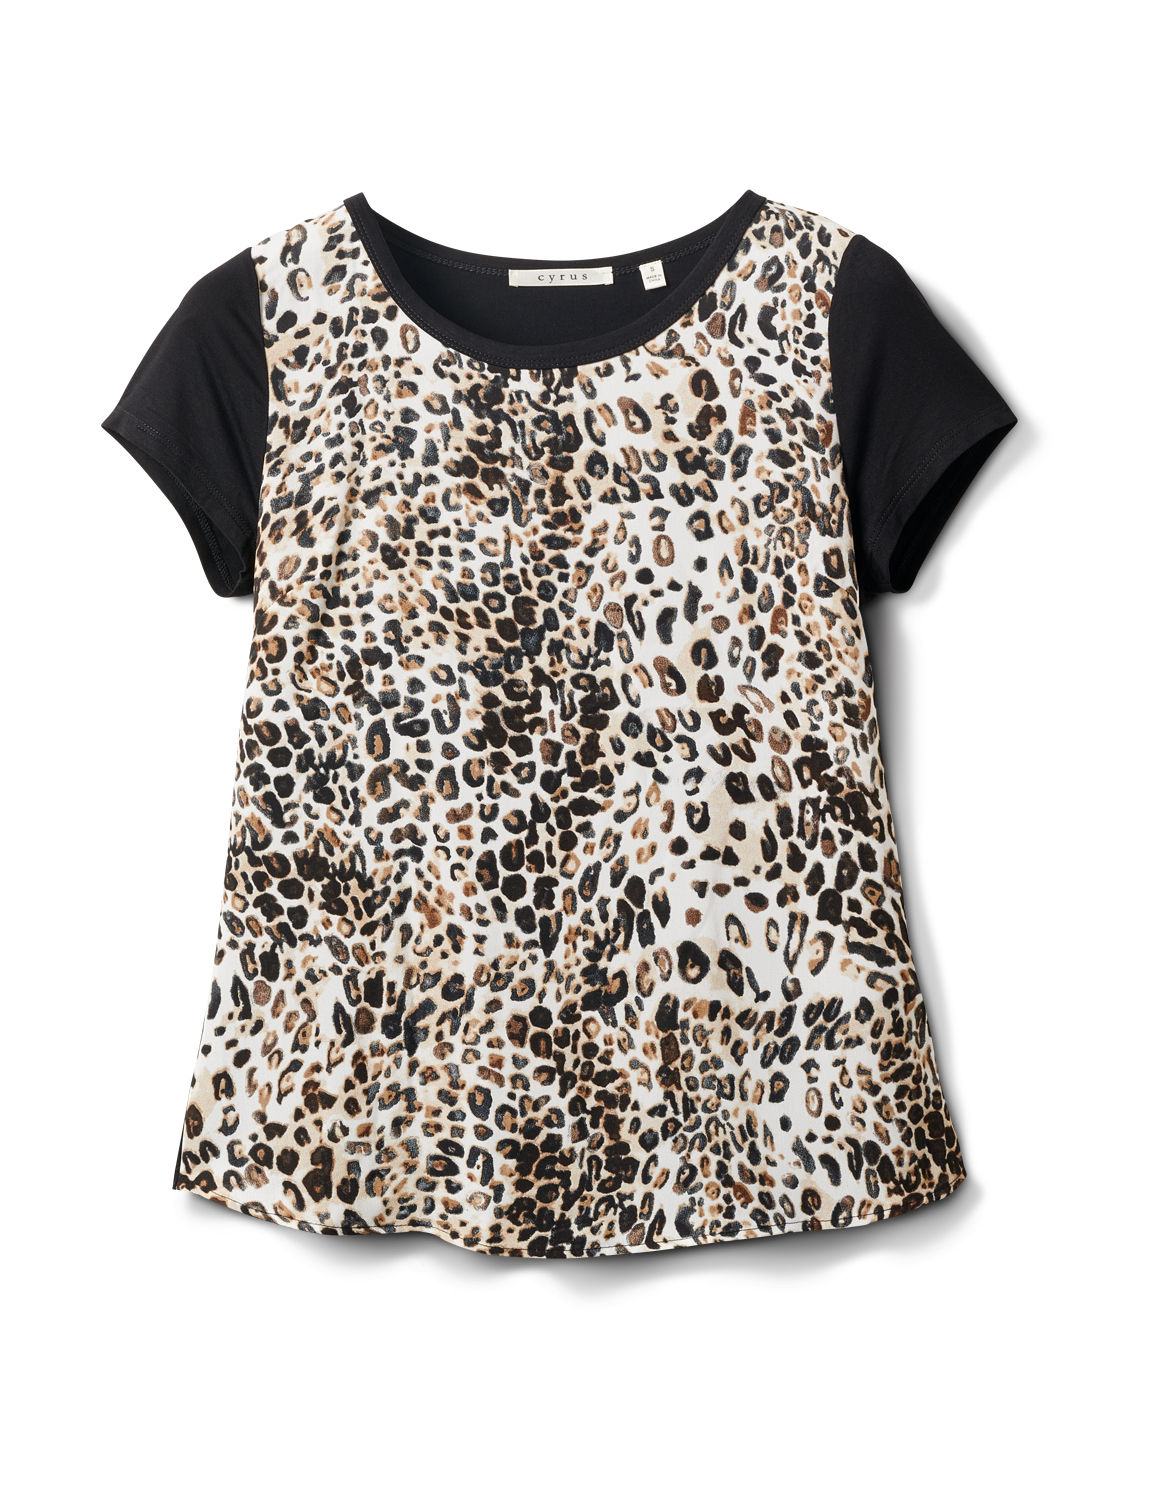 Leopard Mix Media Knit Top -Black - Front